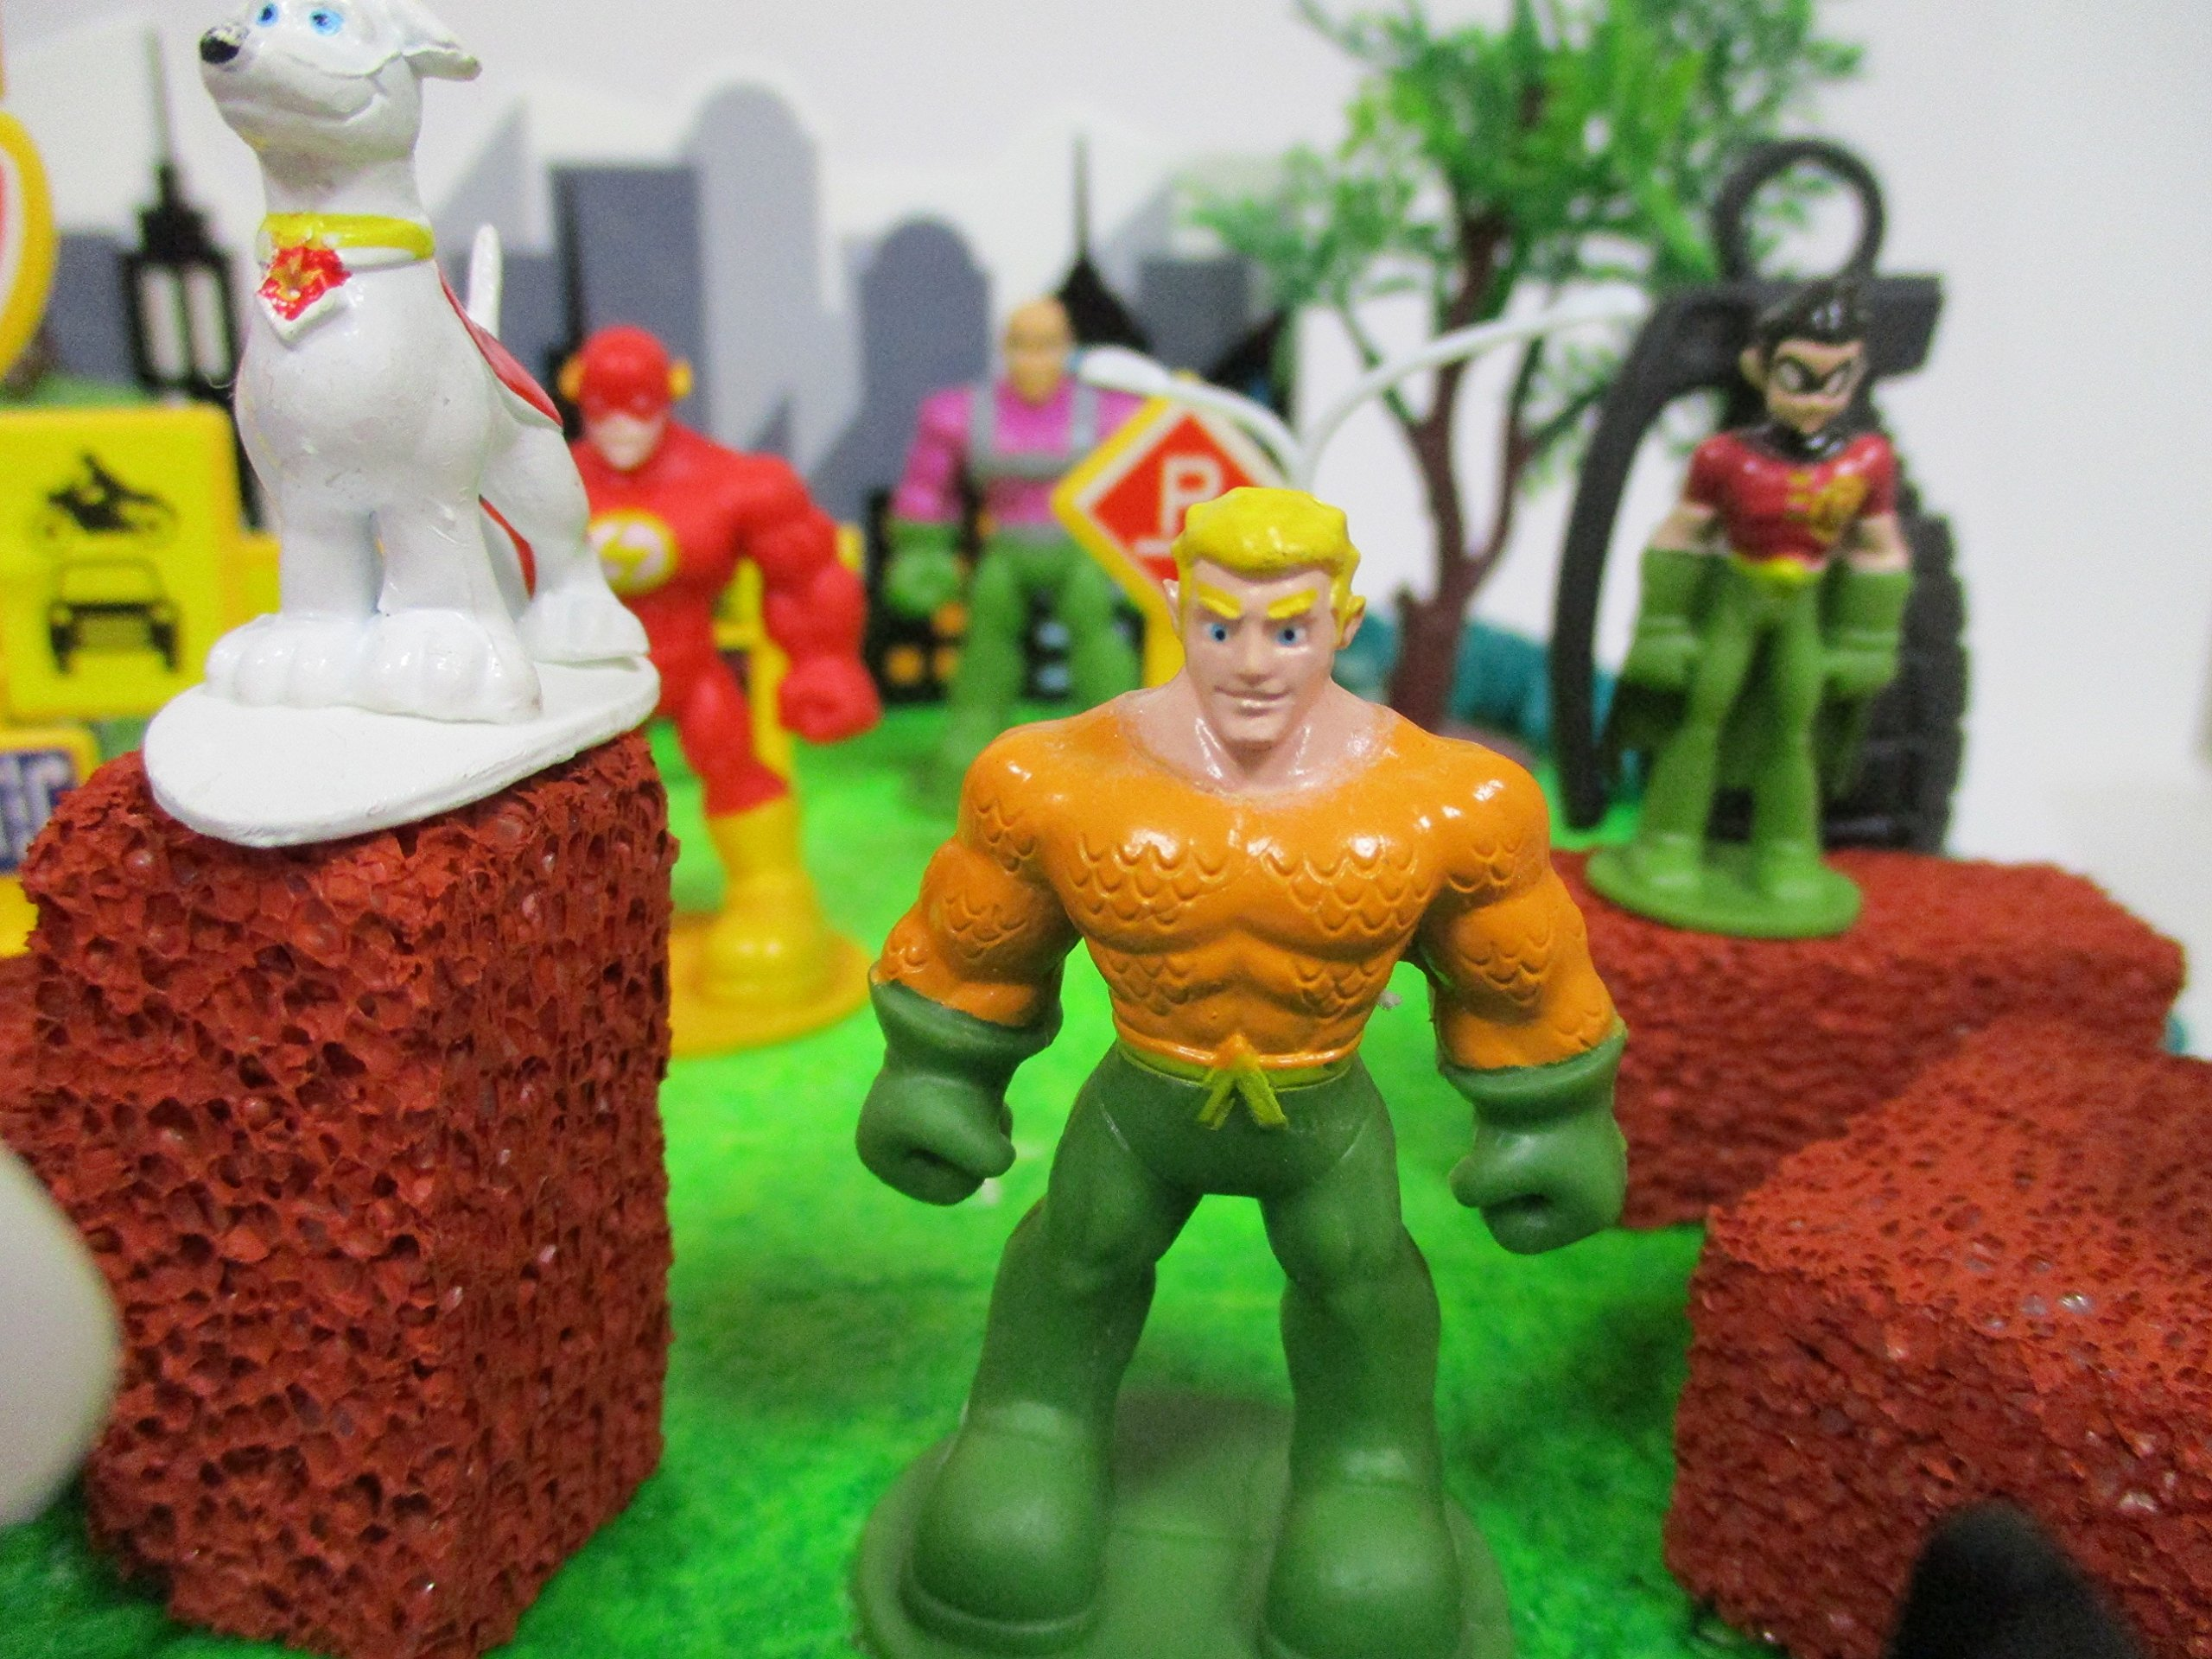 DC Comic Super Friends Birthday Cake Topper Set Featuring Super Hero Crime Fighters and Villains with Decorative Accessories by Kitoo (Image #3)